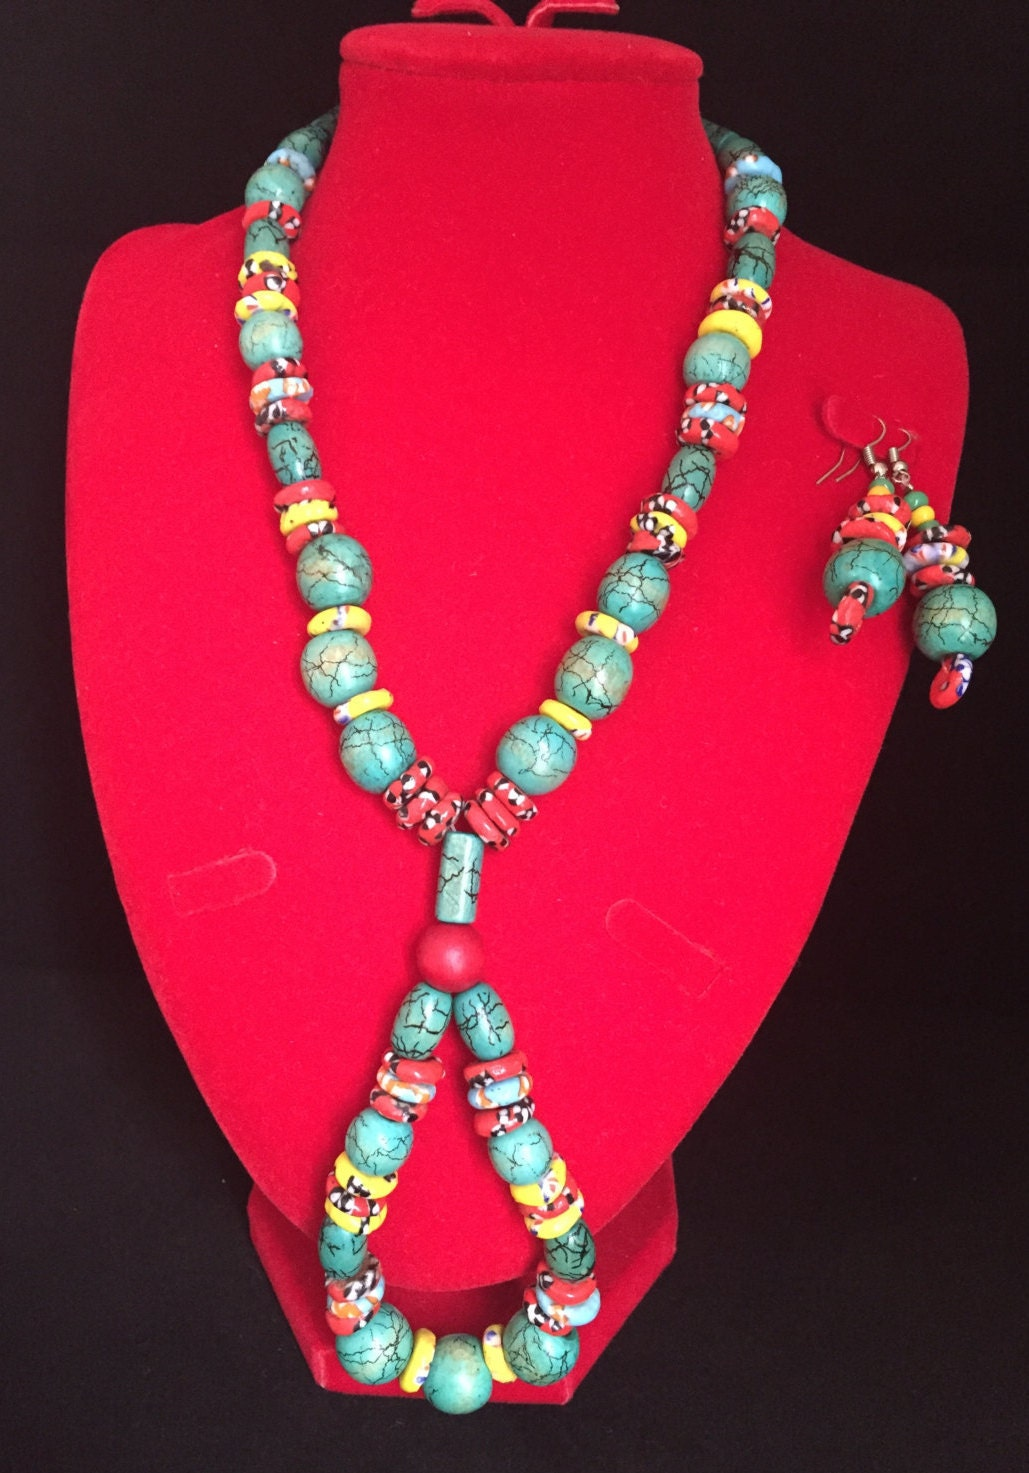 Jade wood crackle bead with stone bead spacers loop necklace and earrings set